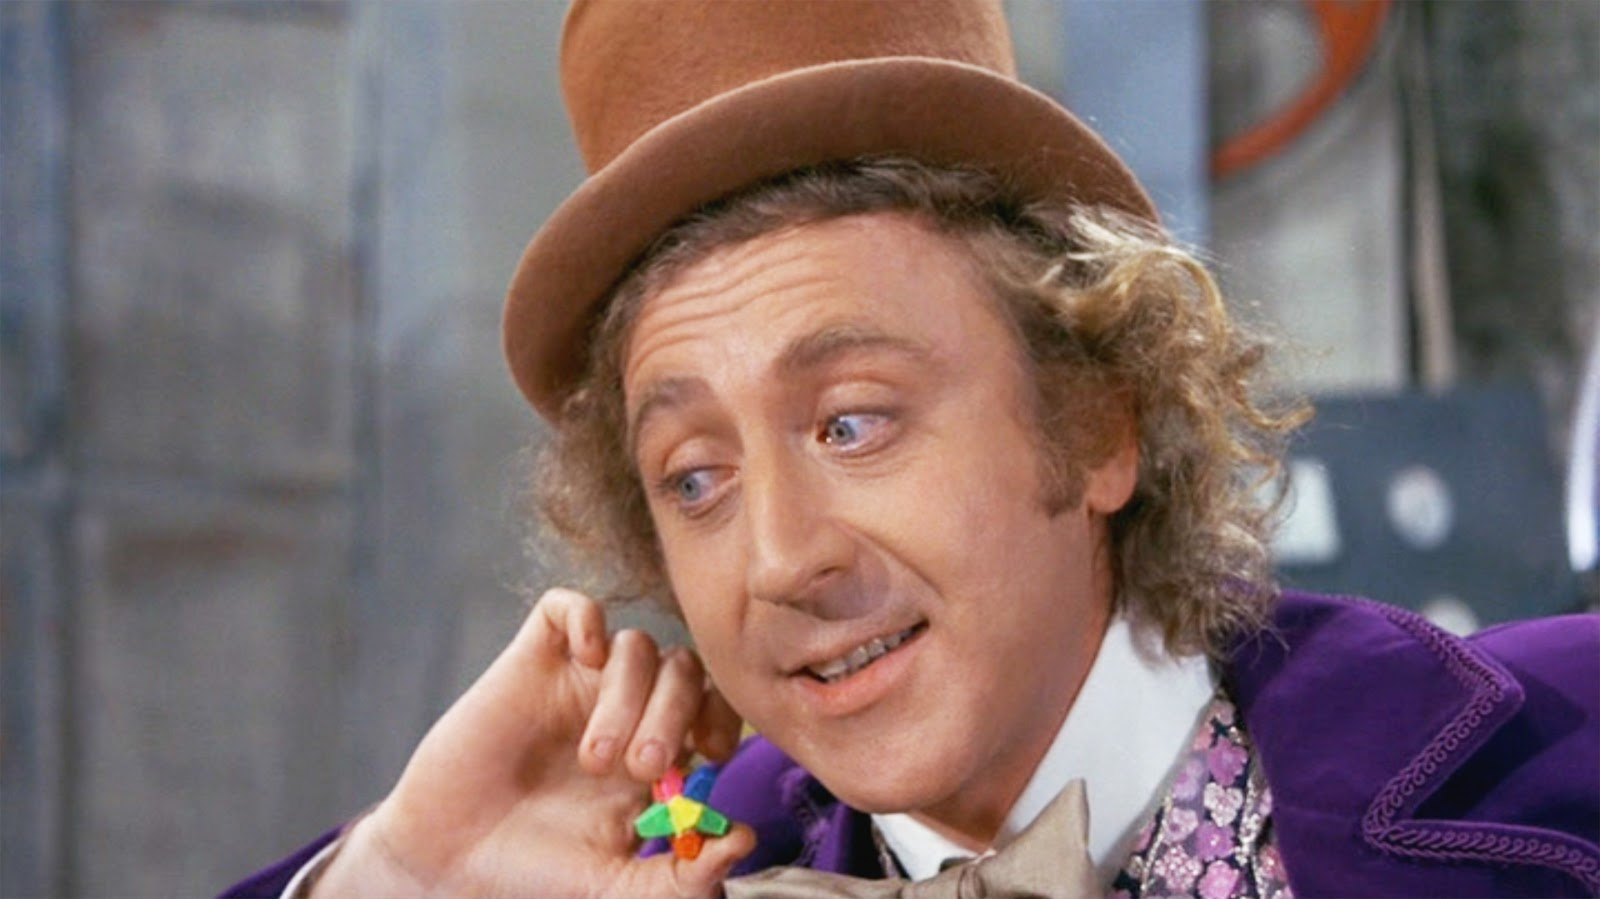 Willy Wonka And The Chocolate Factory Facts You Probably